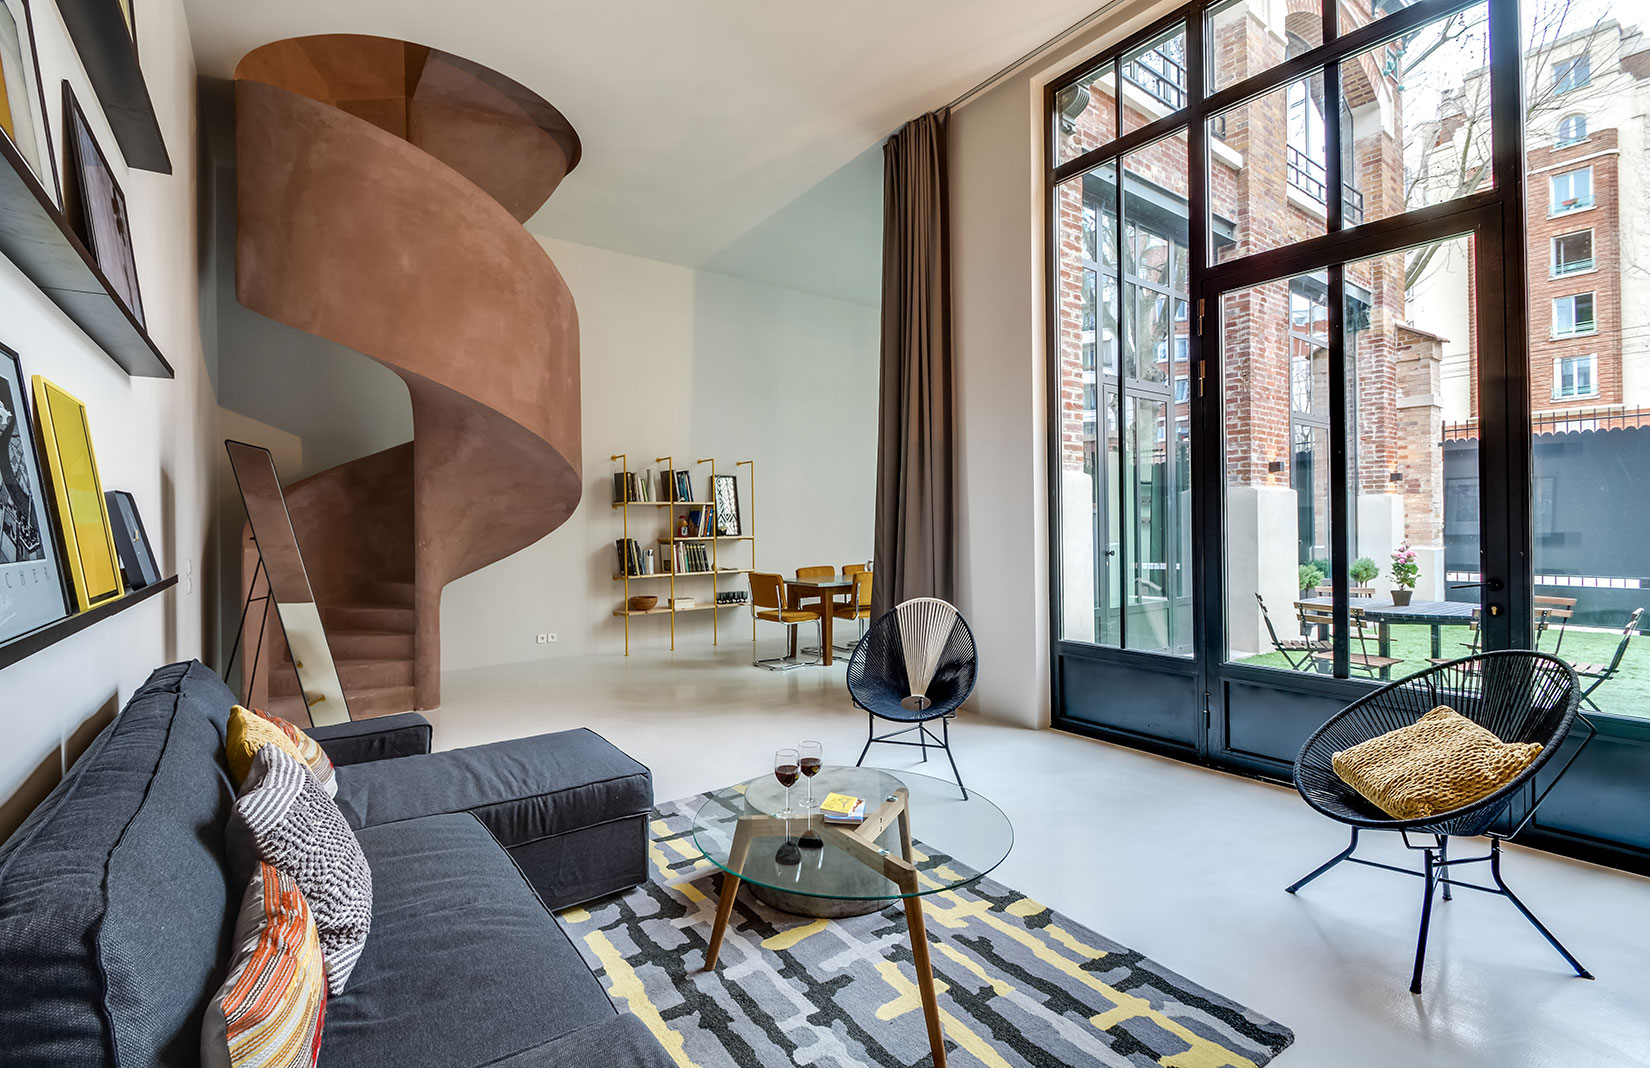 10 Of The Best Paris Apartments For Rent